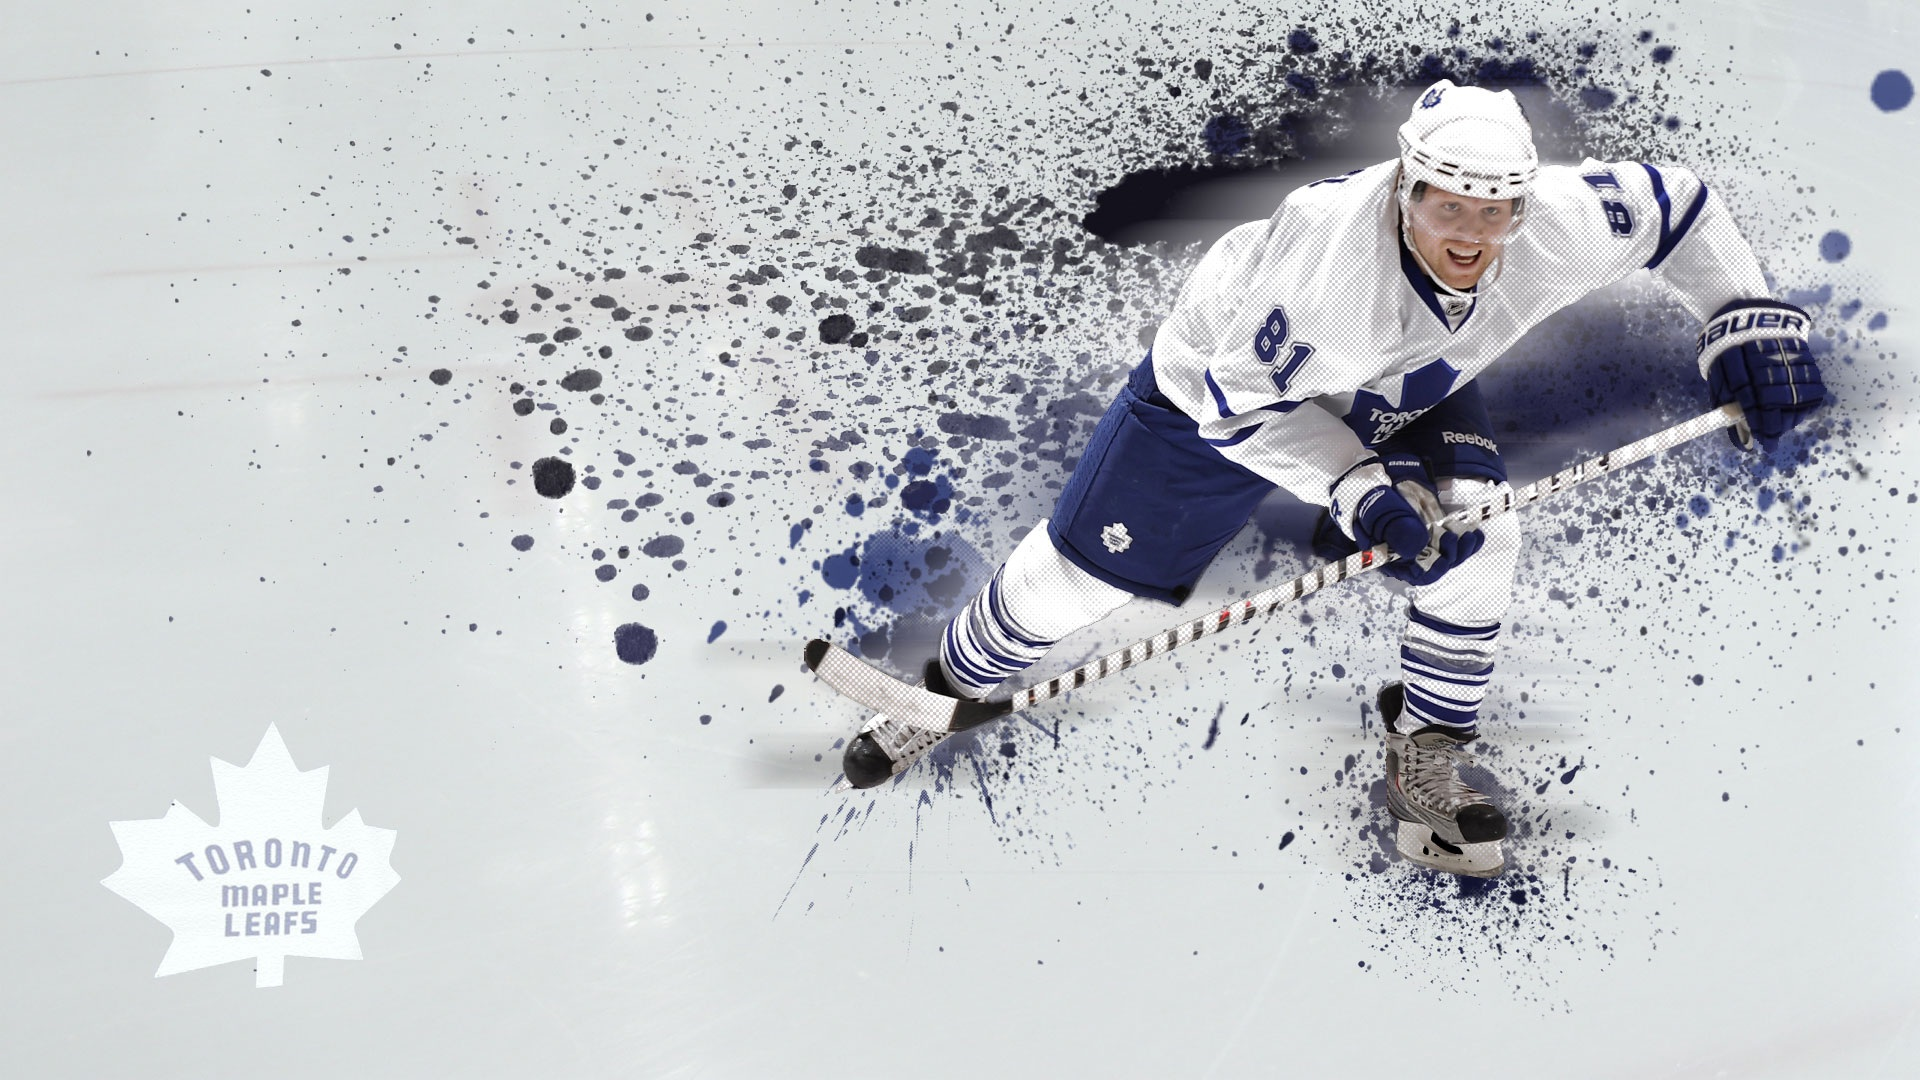 NHL Wallpaper wallpaper NHL Wallpaper hd wallpaper background 1920x1080